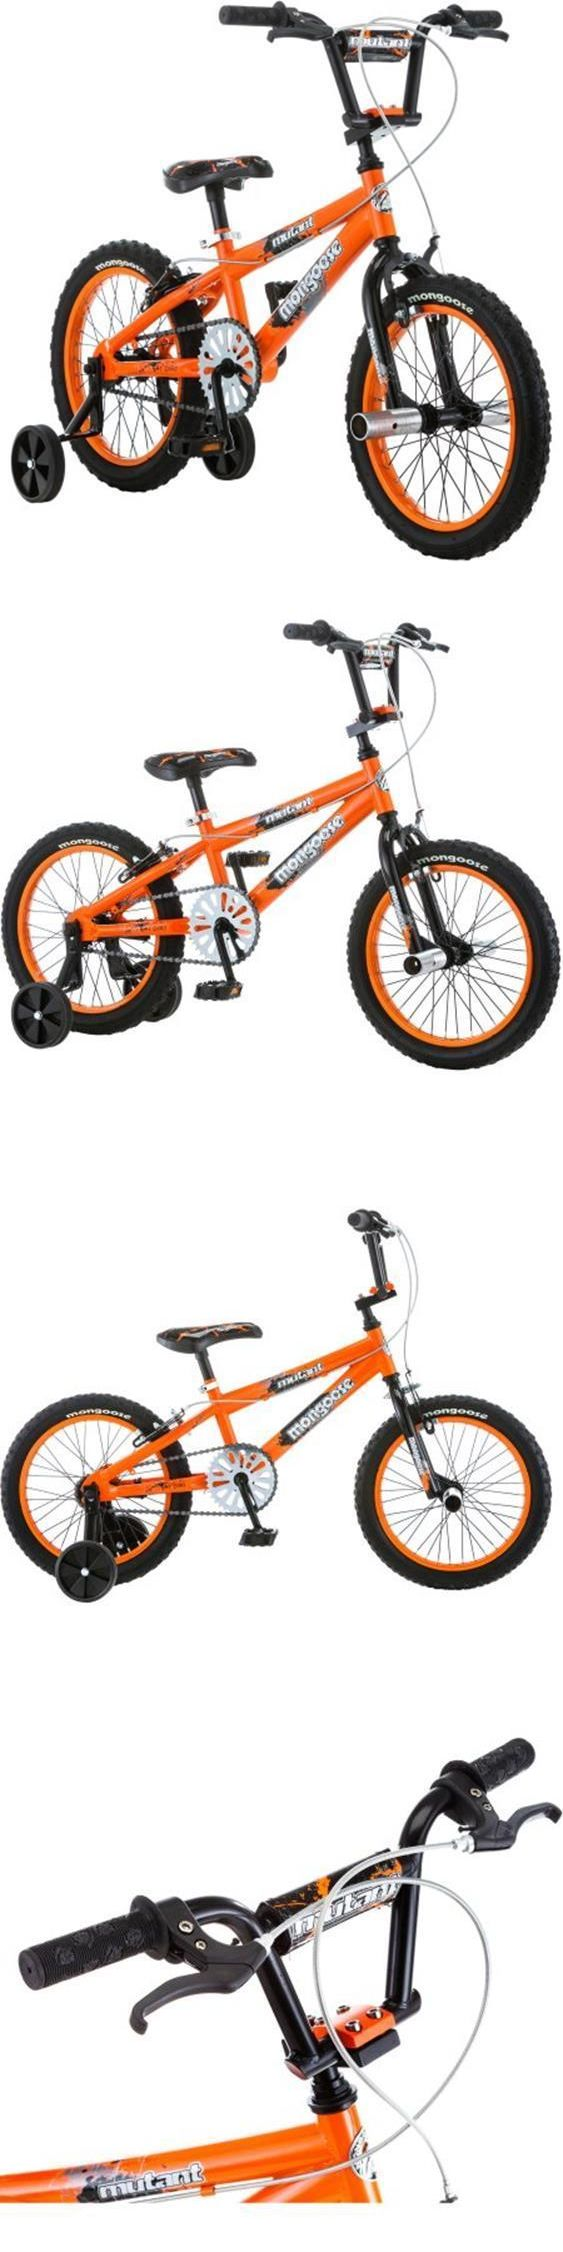 Bicycles 177831: 16 Inch Kids Bike Mutant Boys Bicycle Children Training Wheels Toddler Ride BUY IT NOW ONLY: $84.2